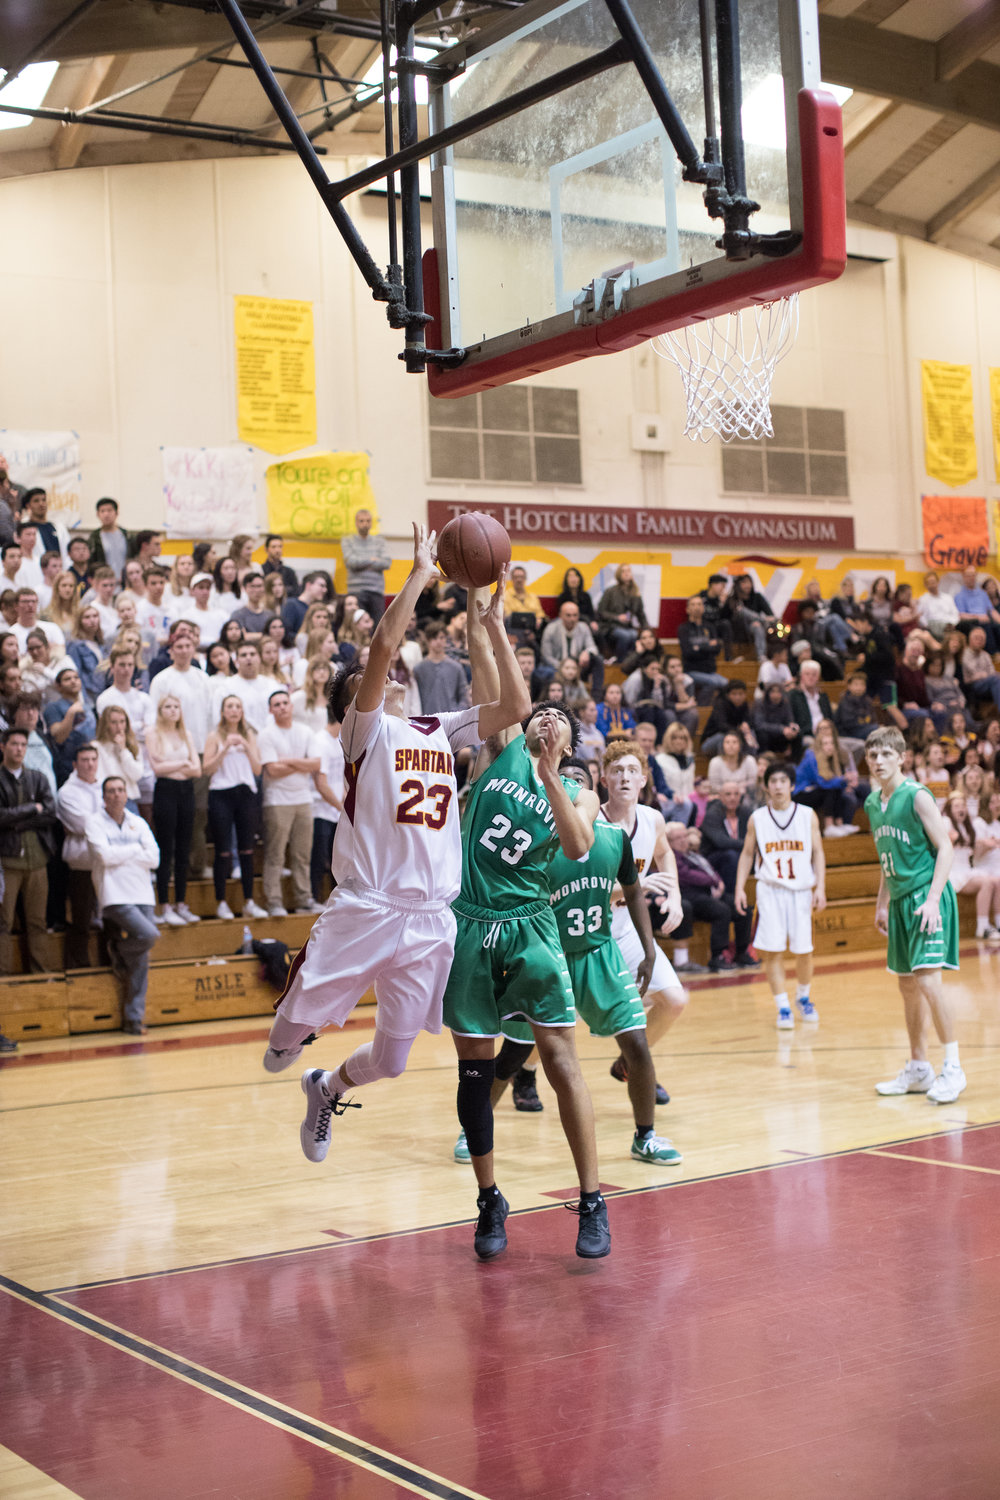 The Spartans host the Wildcats in a playoff game in the South Gym at La Canada High School.